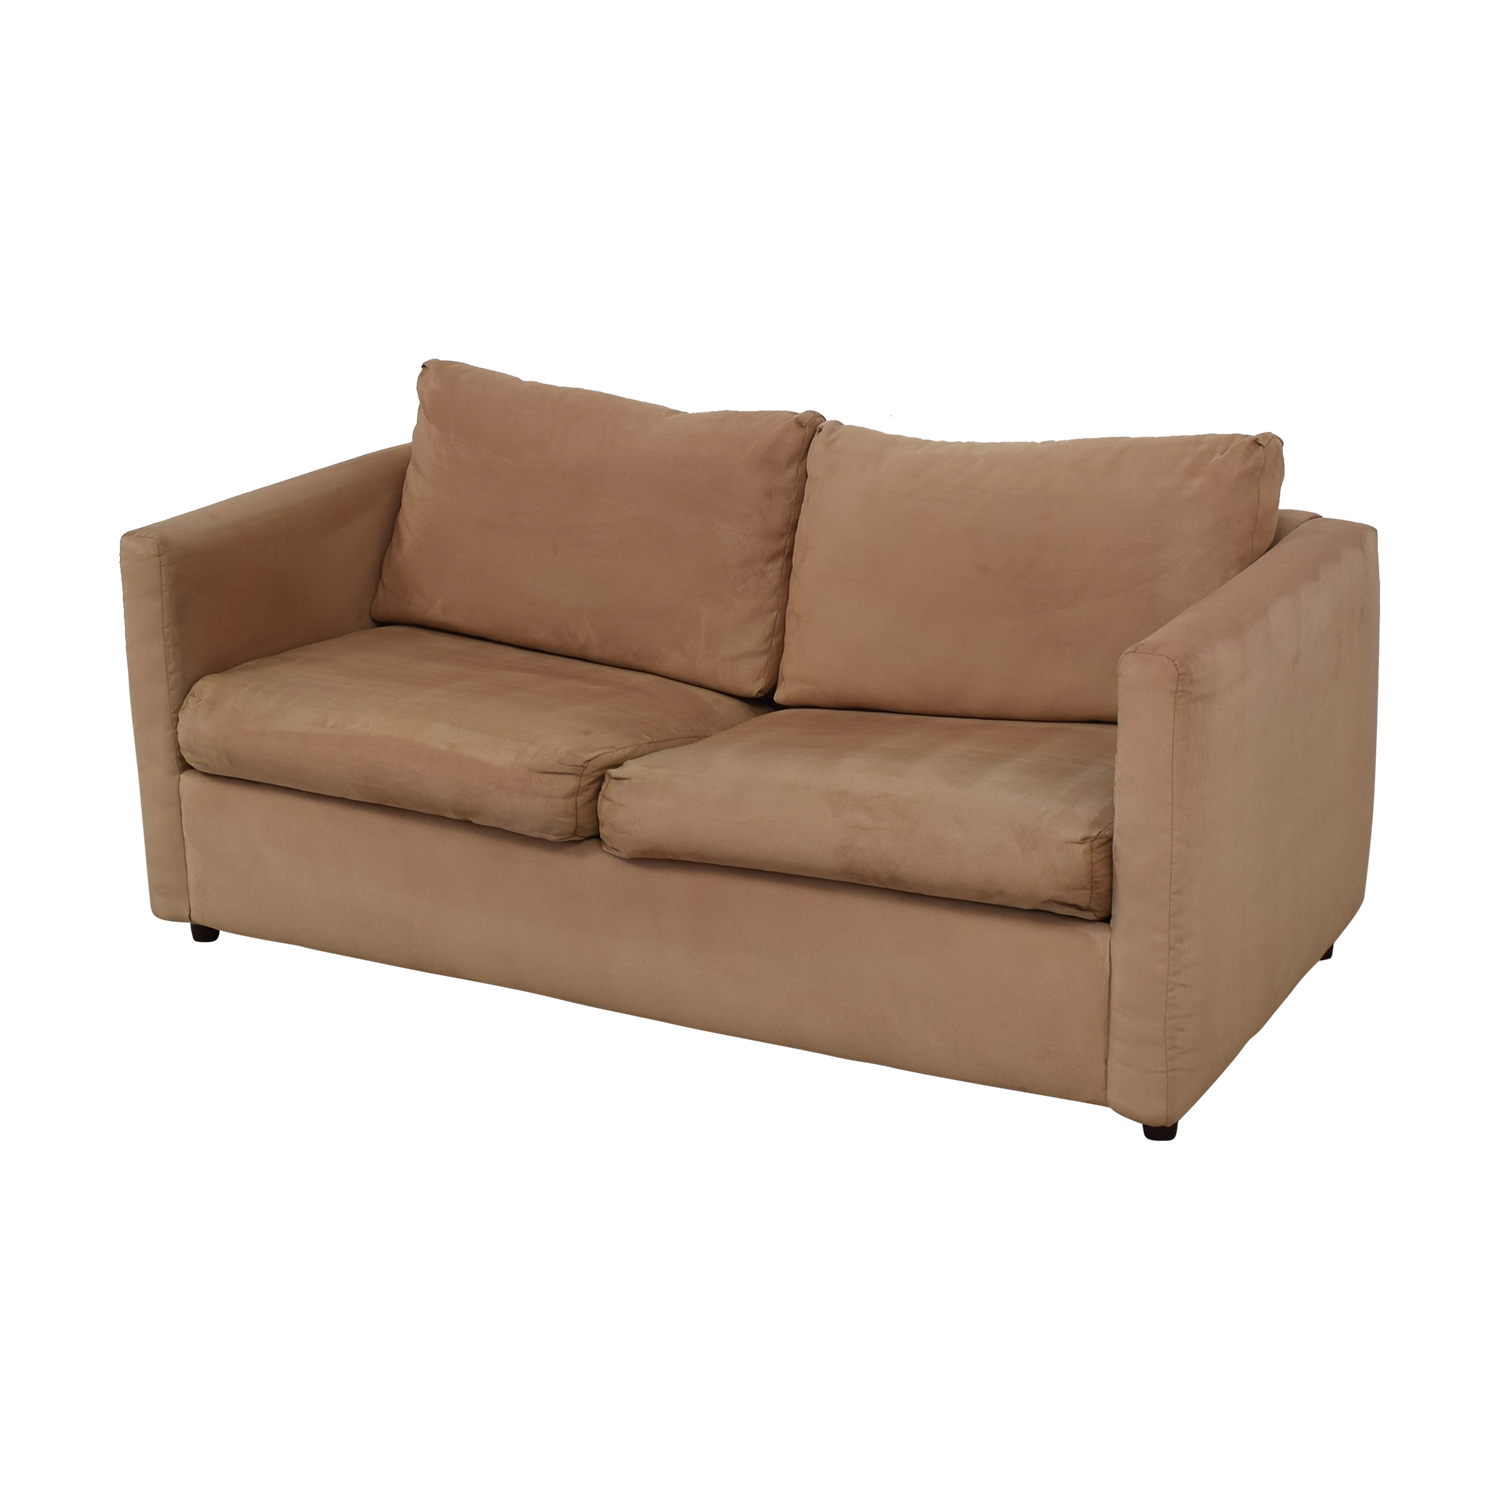 Rowe Furniture Rowe Furniture Two Cushion Sleeper Sofa discount